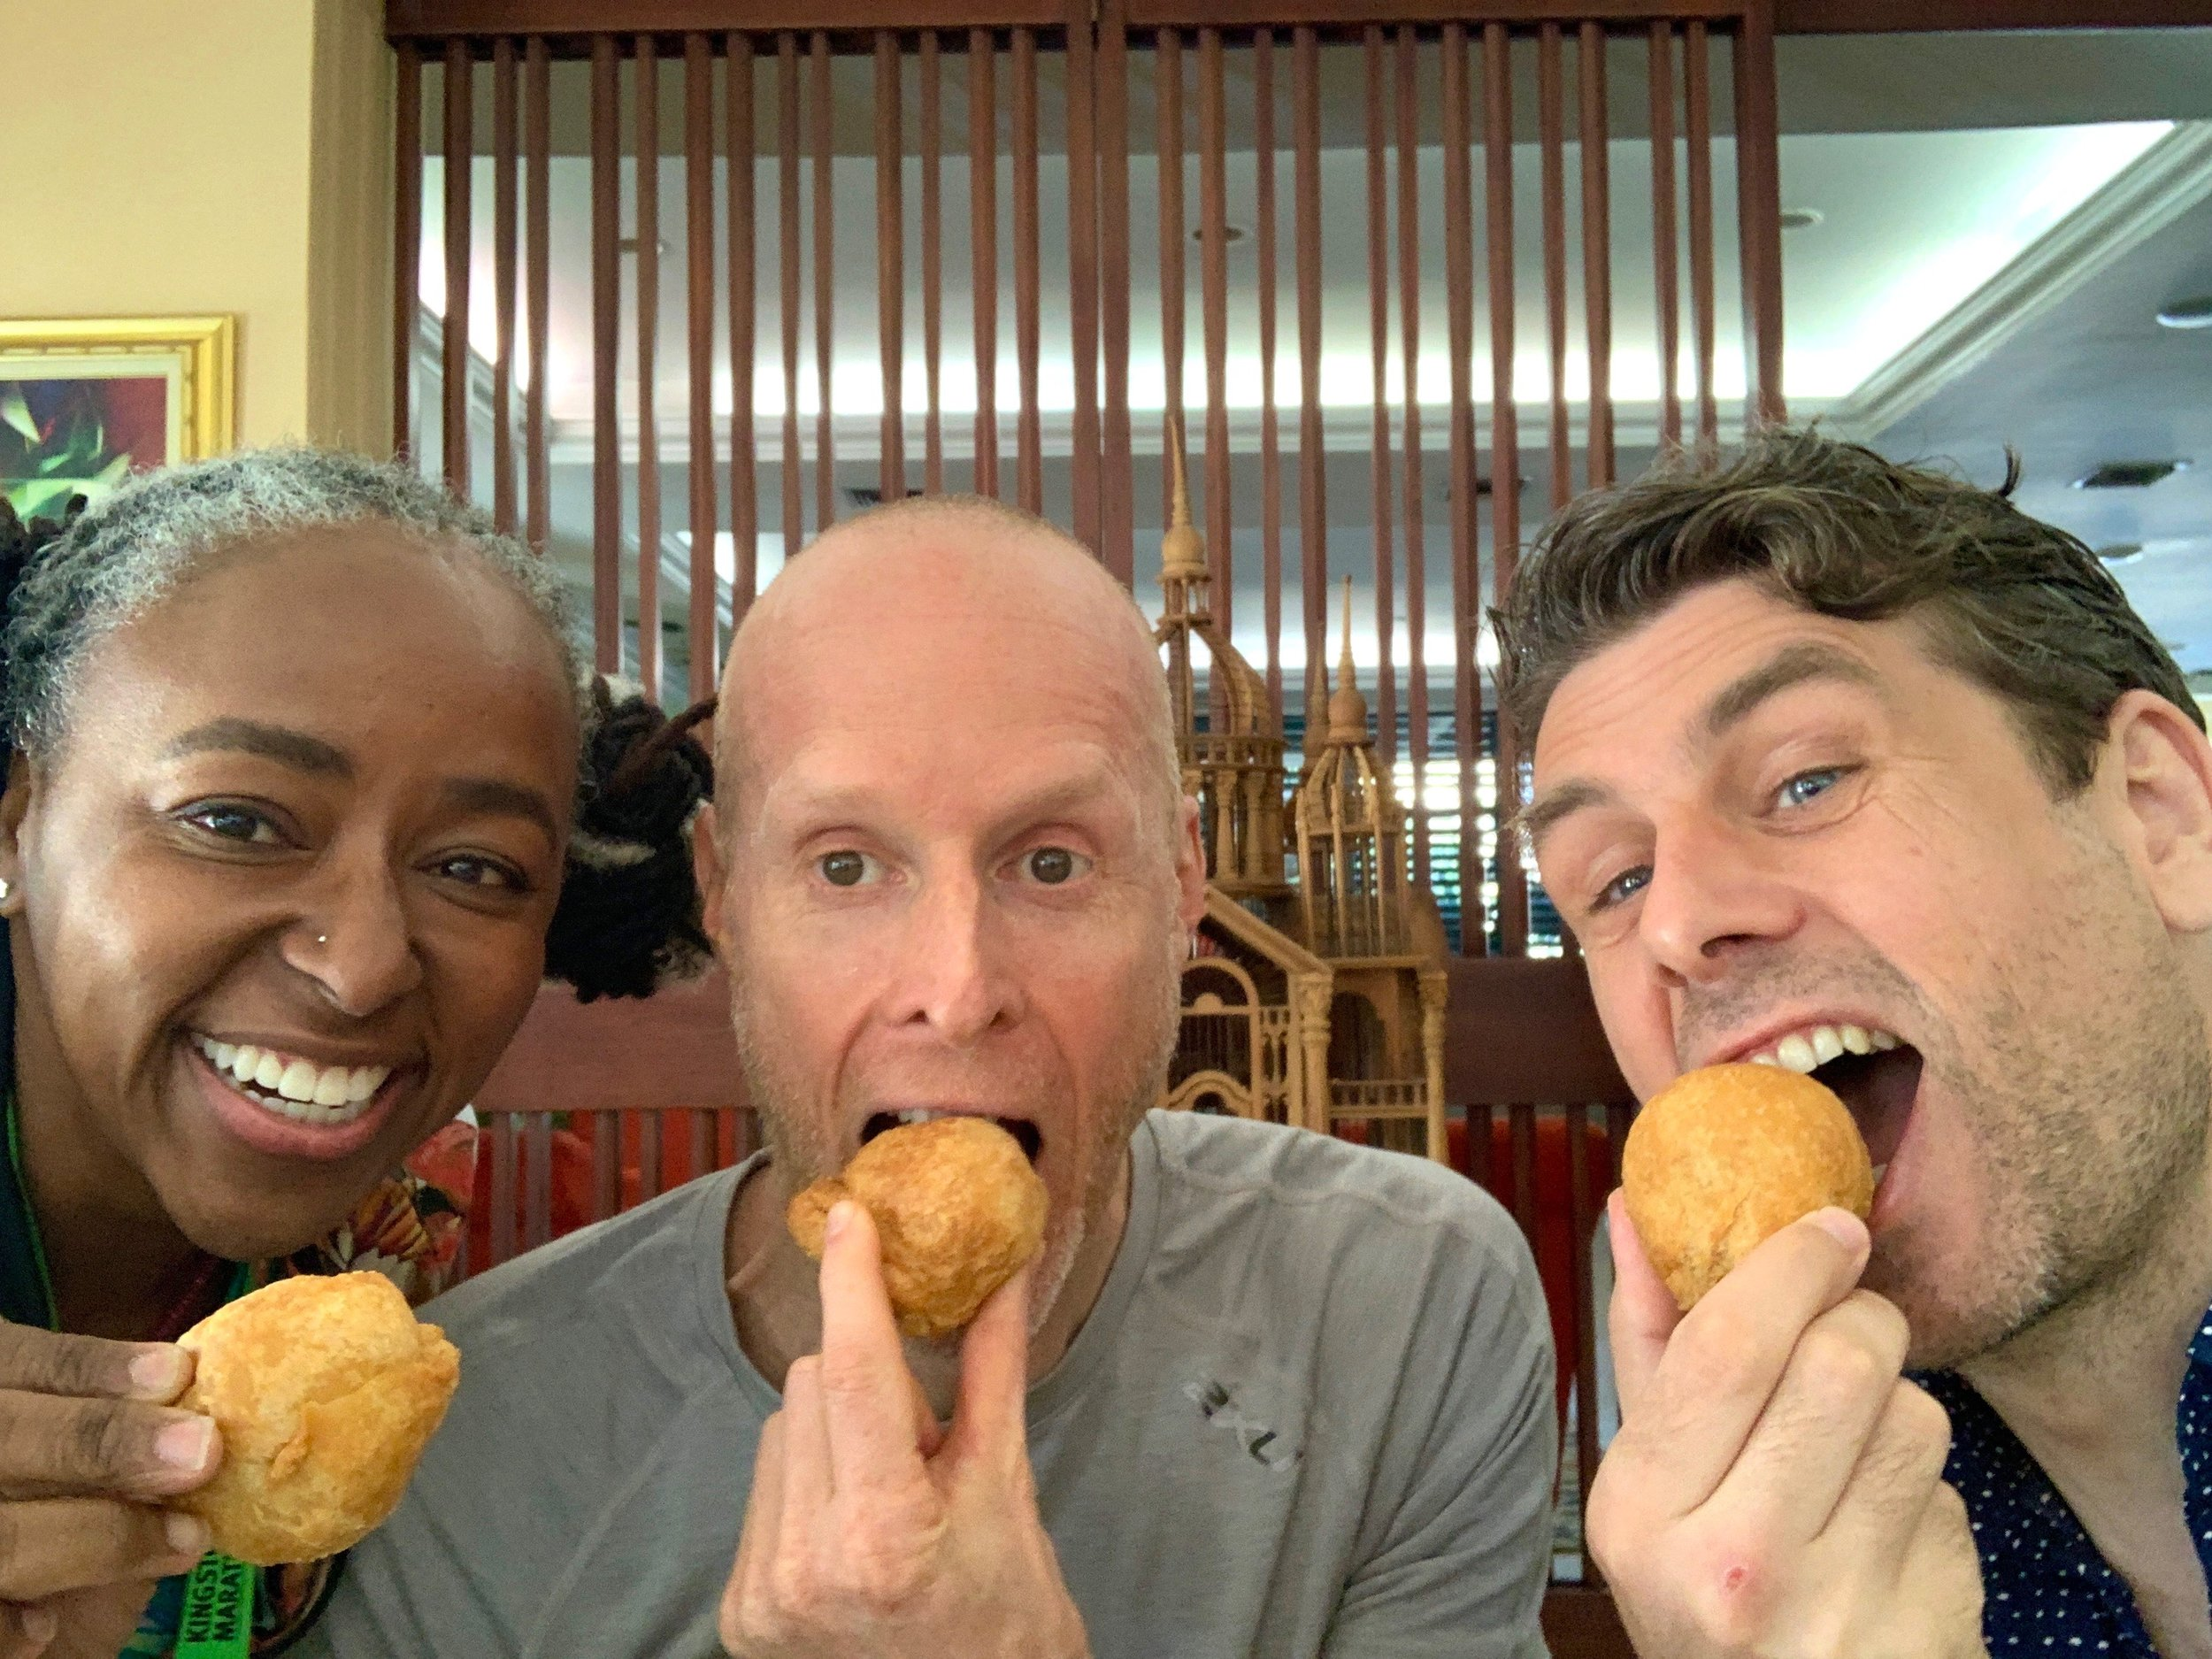 Post-race refueling with fried dumplings (yum!) and my fellow runners Matt and Adharanand.